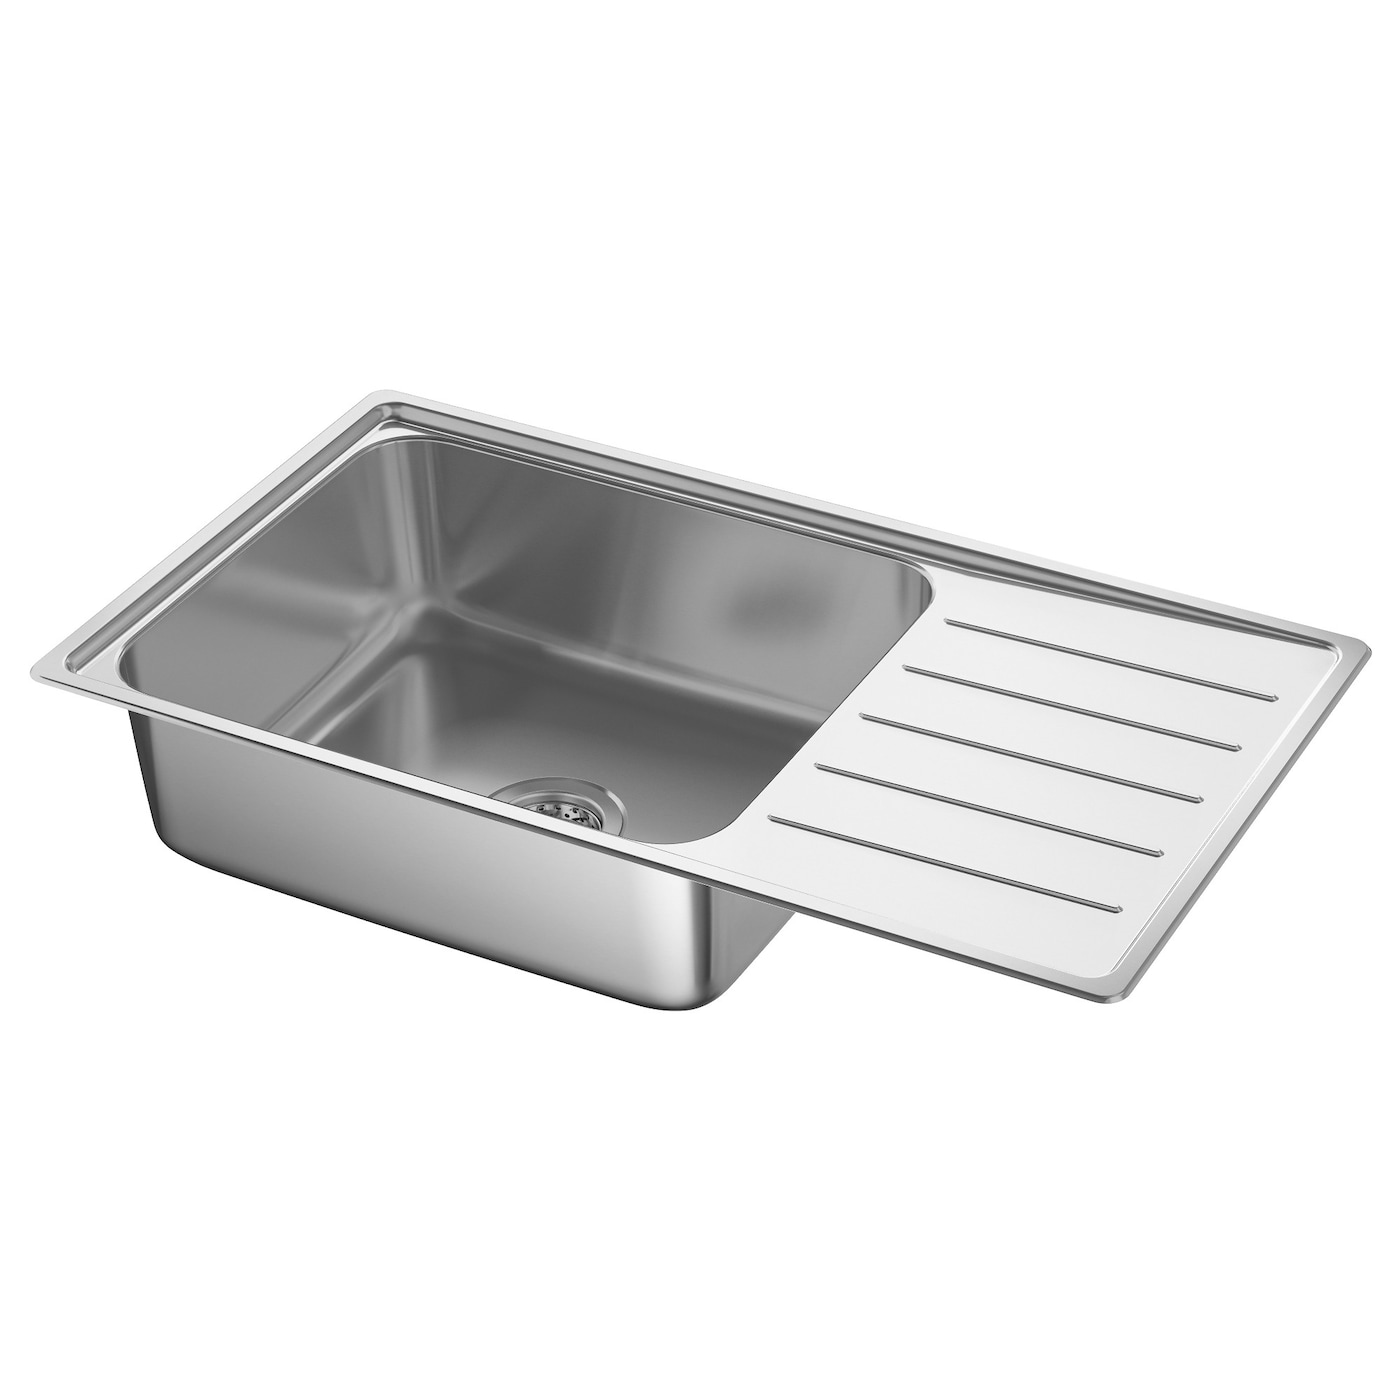 IKEA VATTUDALEN Inset Sink, 1 Bowl With Drainboard